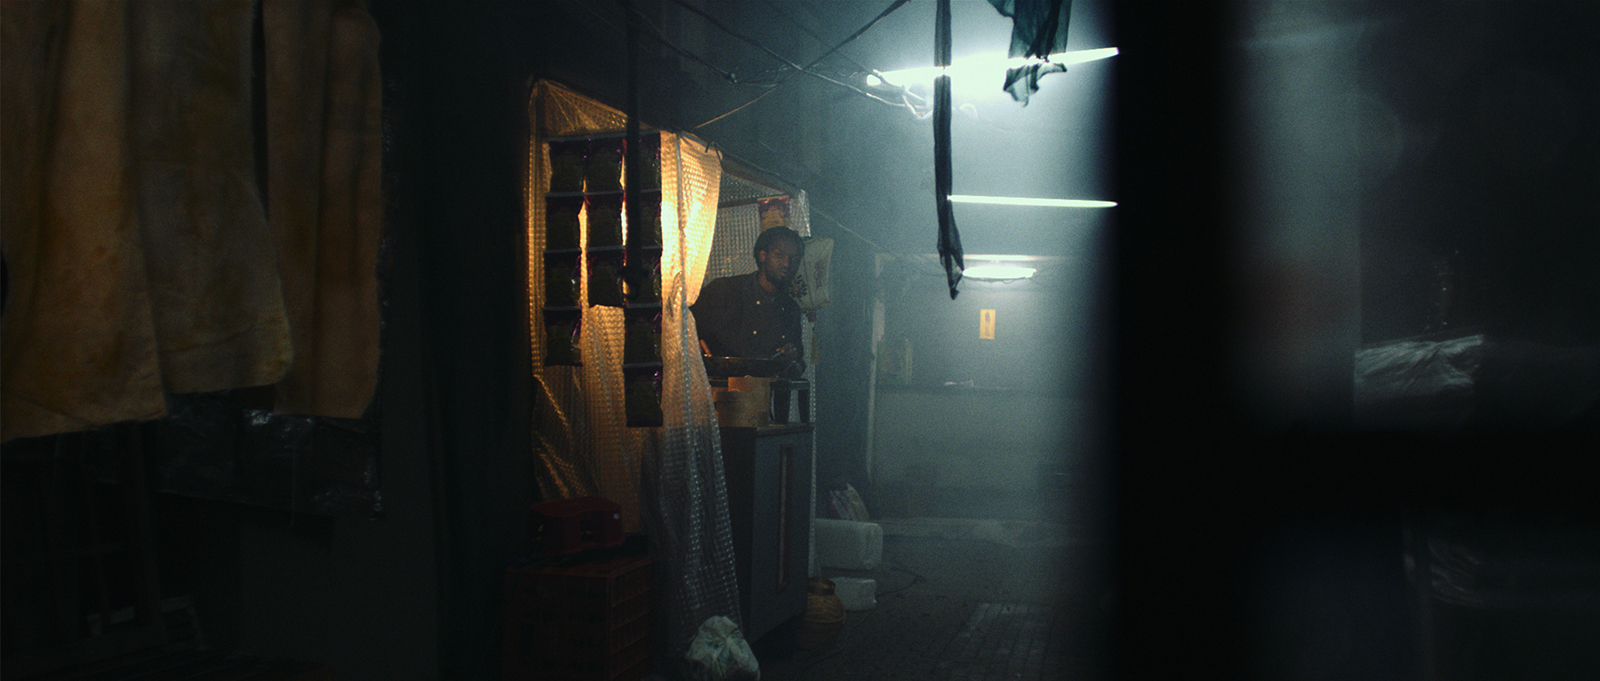 Still from the film Ningyo. It's a shot of a dark back ally. An outside cook is looking in the direction of the camera.